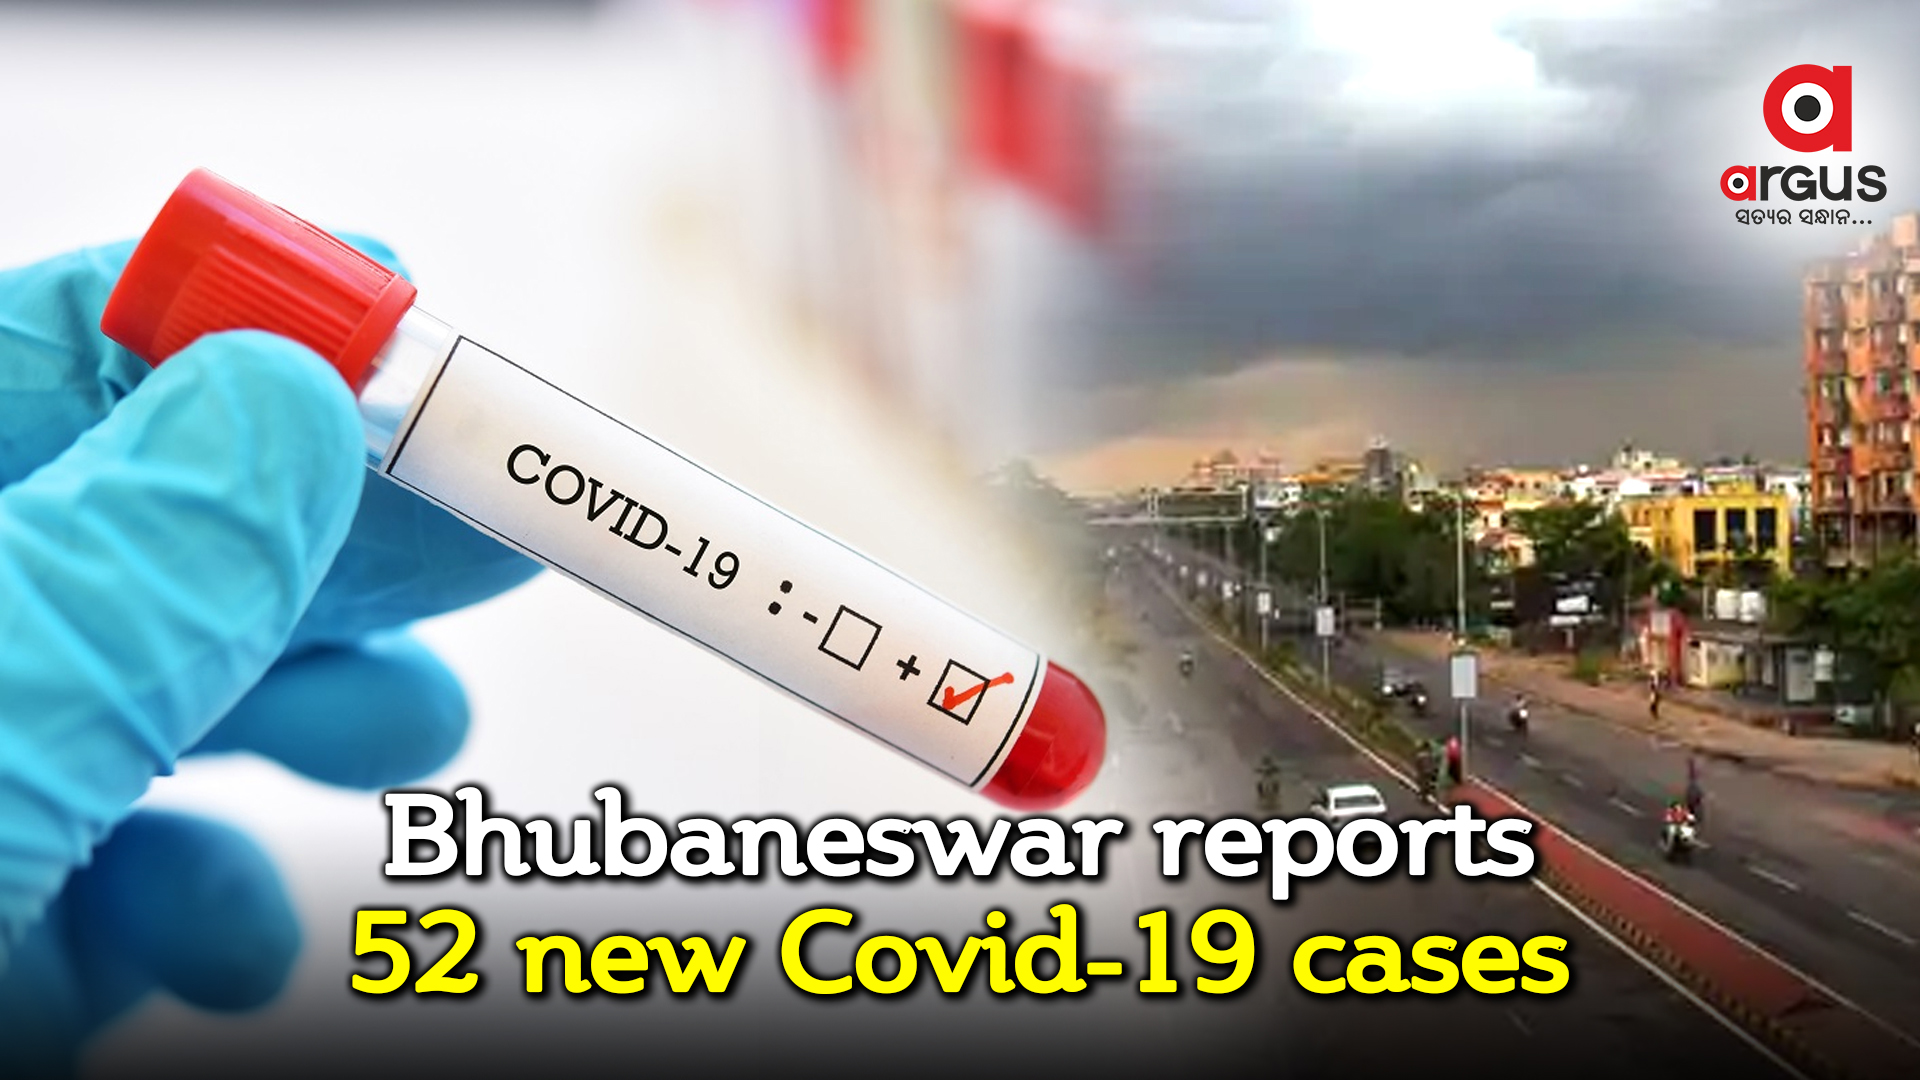 Bhubaneswar reports 52 new Covid-19 cases, 13 recoveries